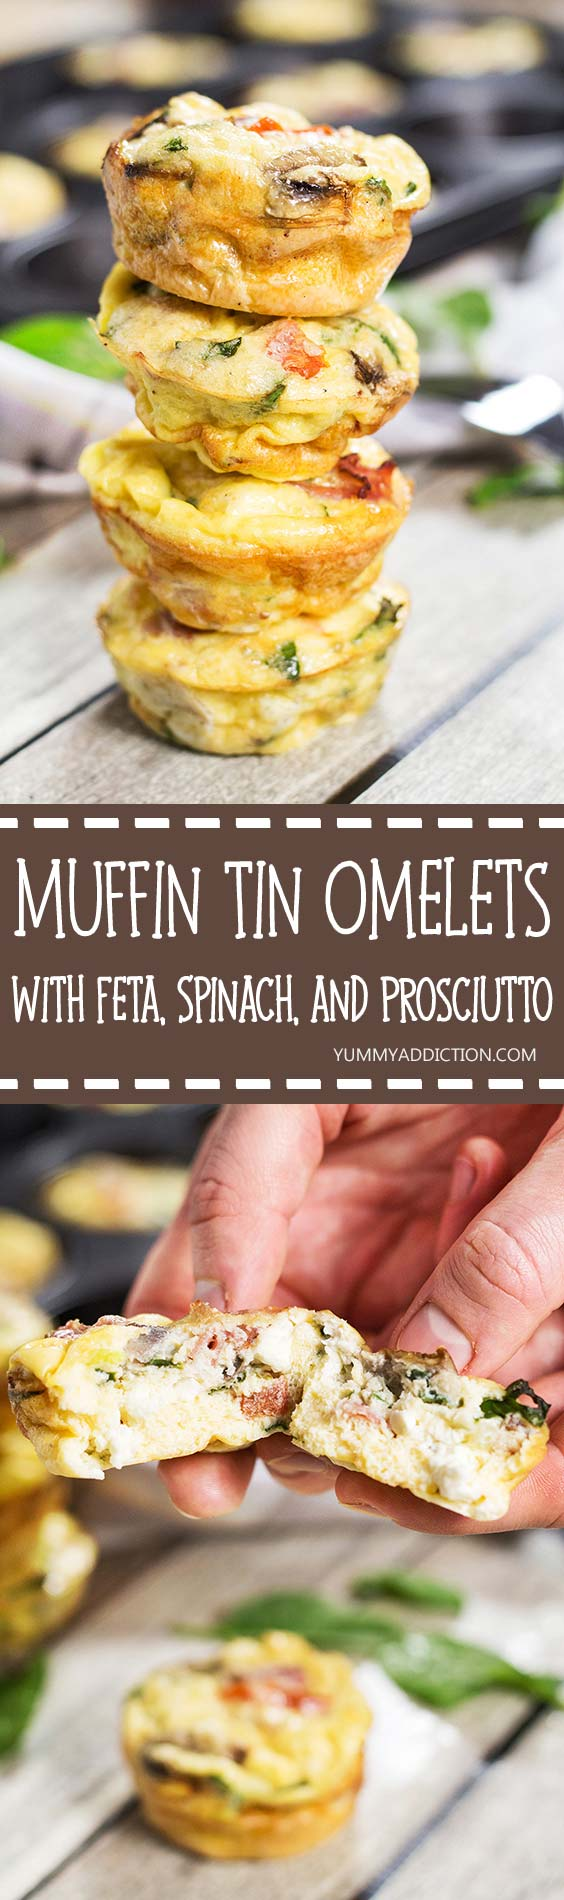 Check out these heavenly delicious Muffin Tin Omelets. They are packed with prosciutto, feta, spinach, and mushrooms. A perfect make-ahead breakfast!   yummyaddiction.com